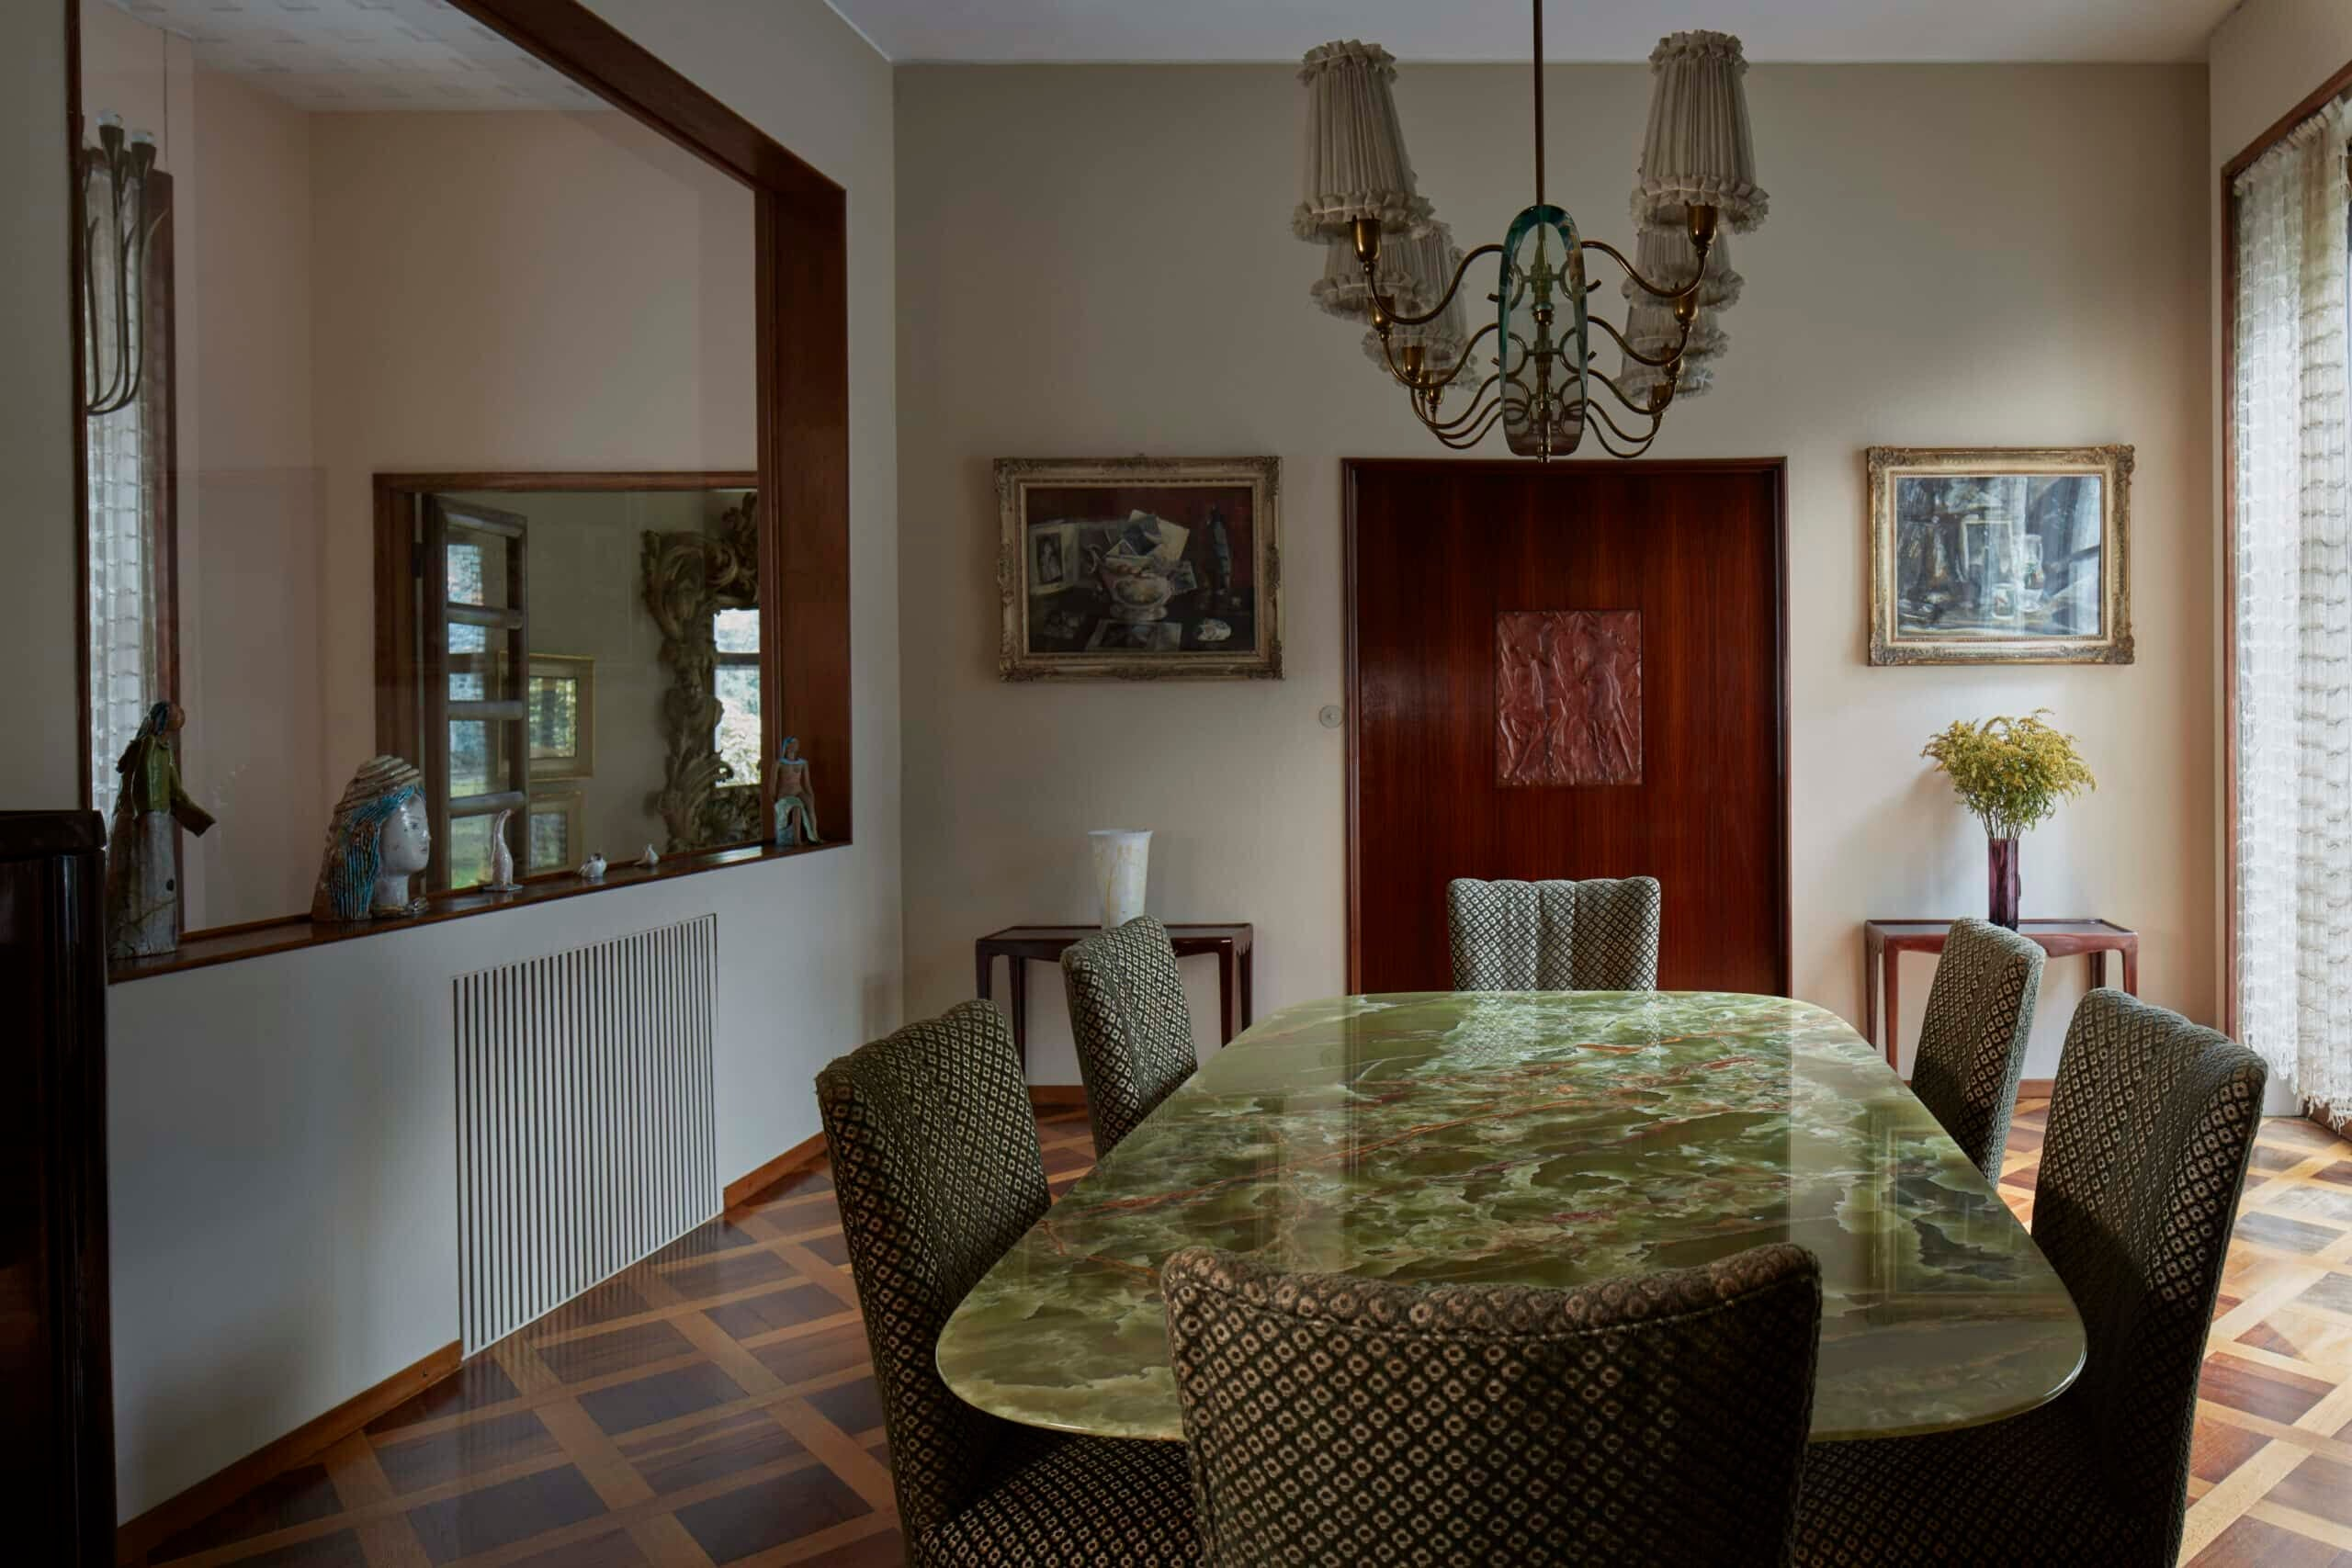 The dining room of Villa Borsani